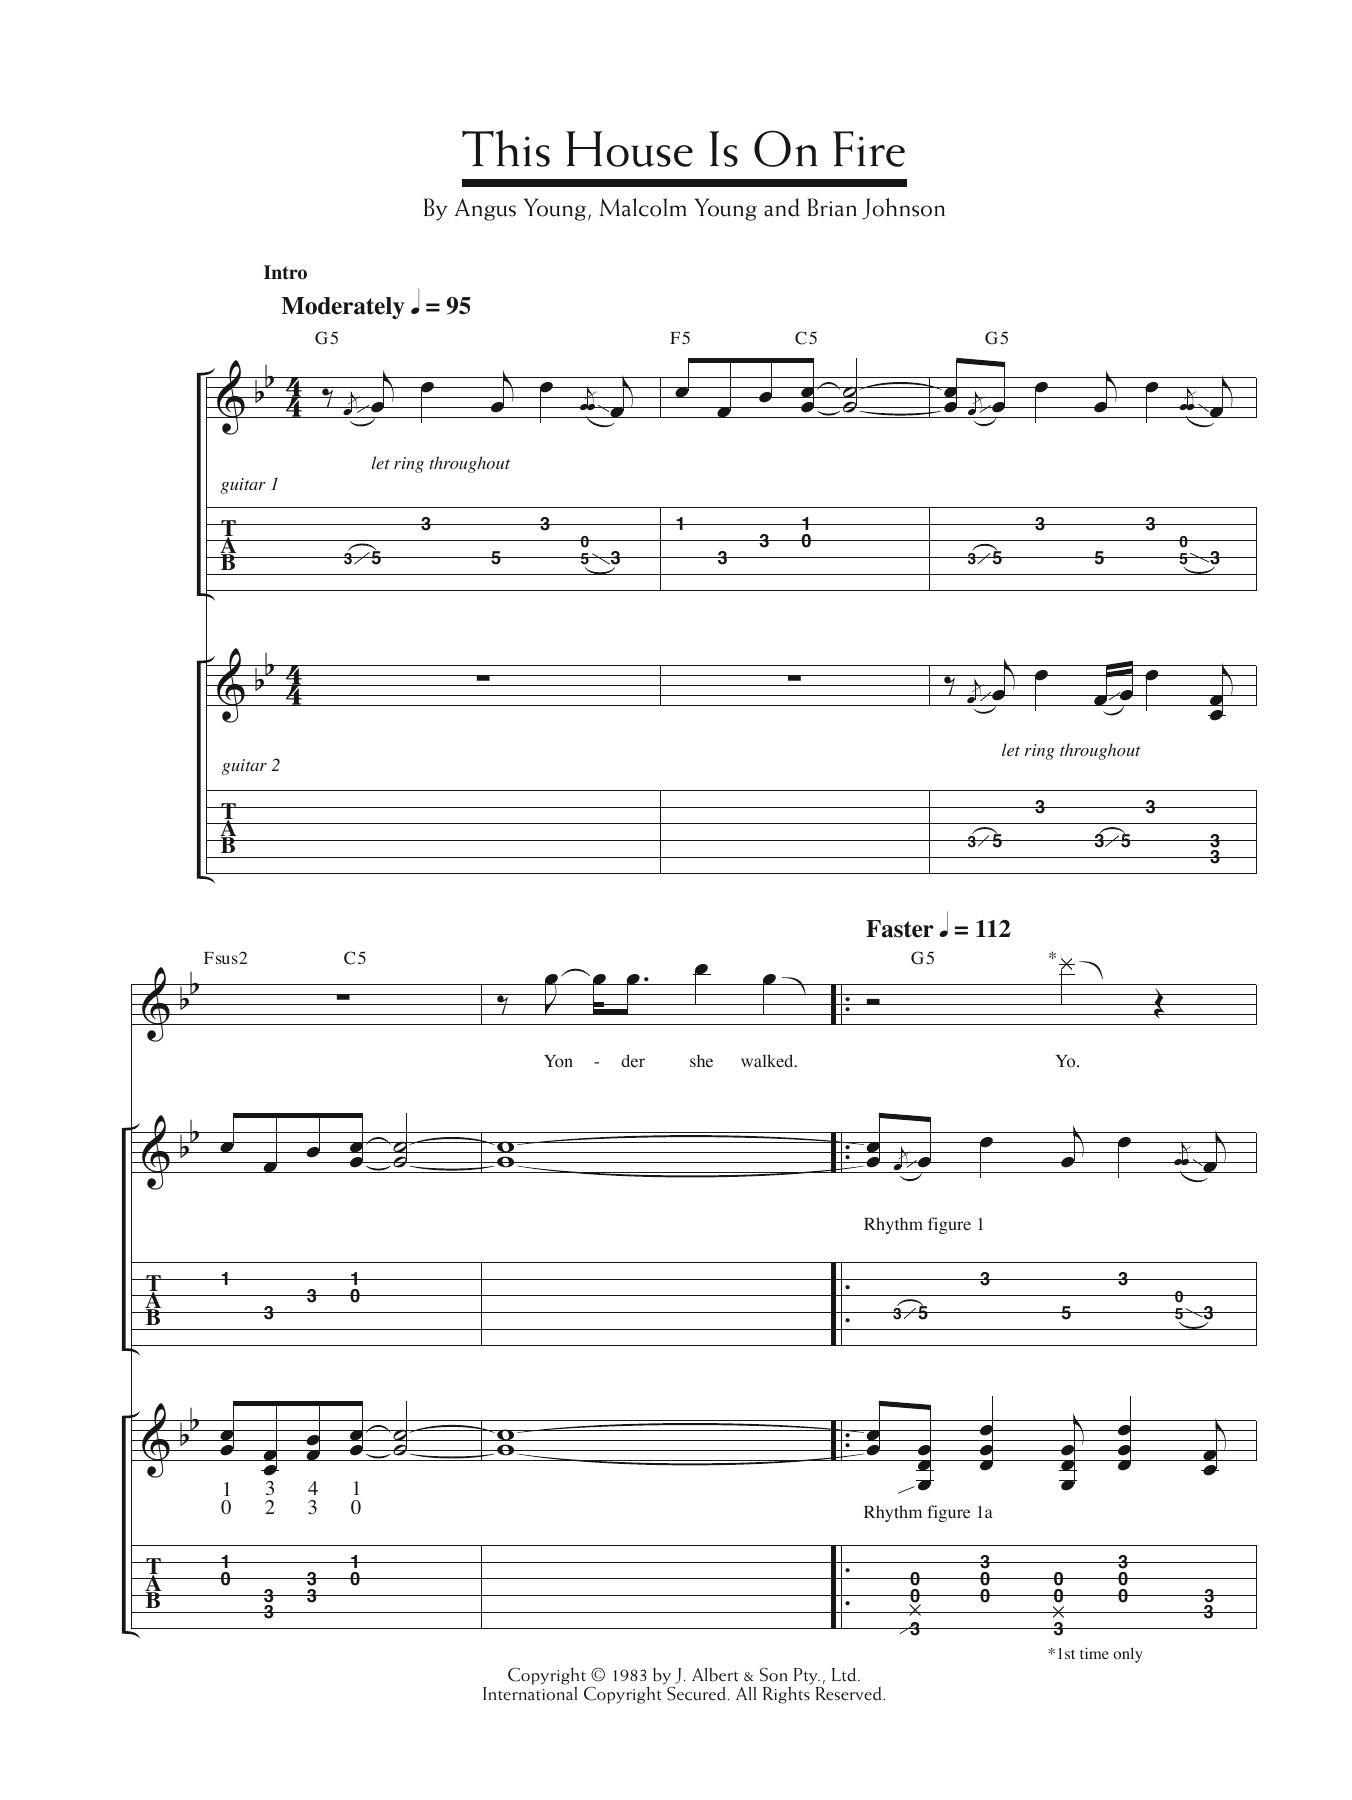 This House Is On Fire Sheet Music